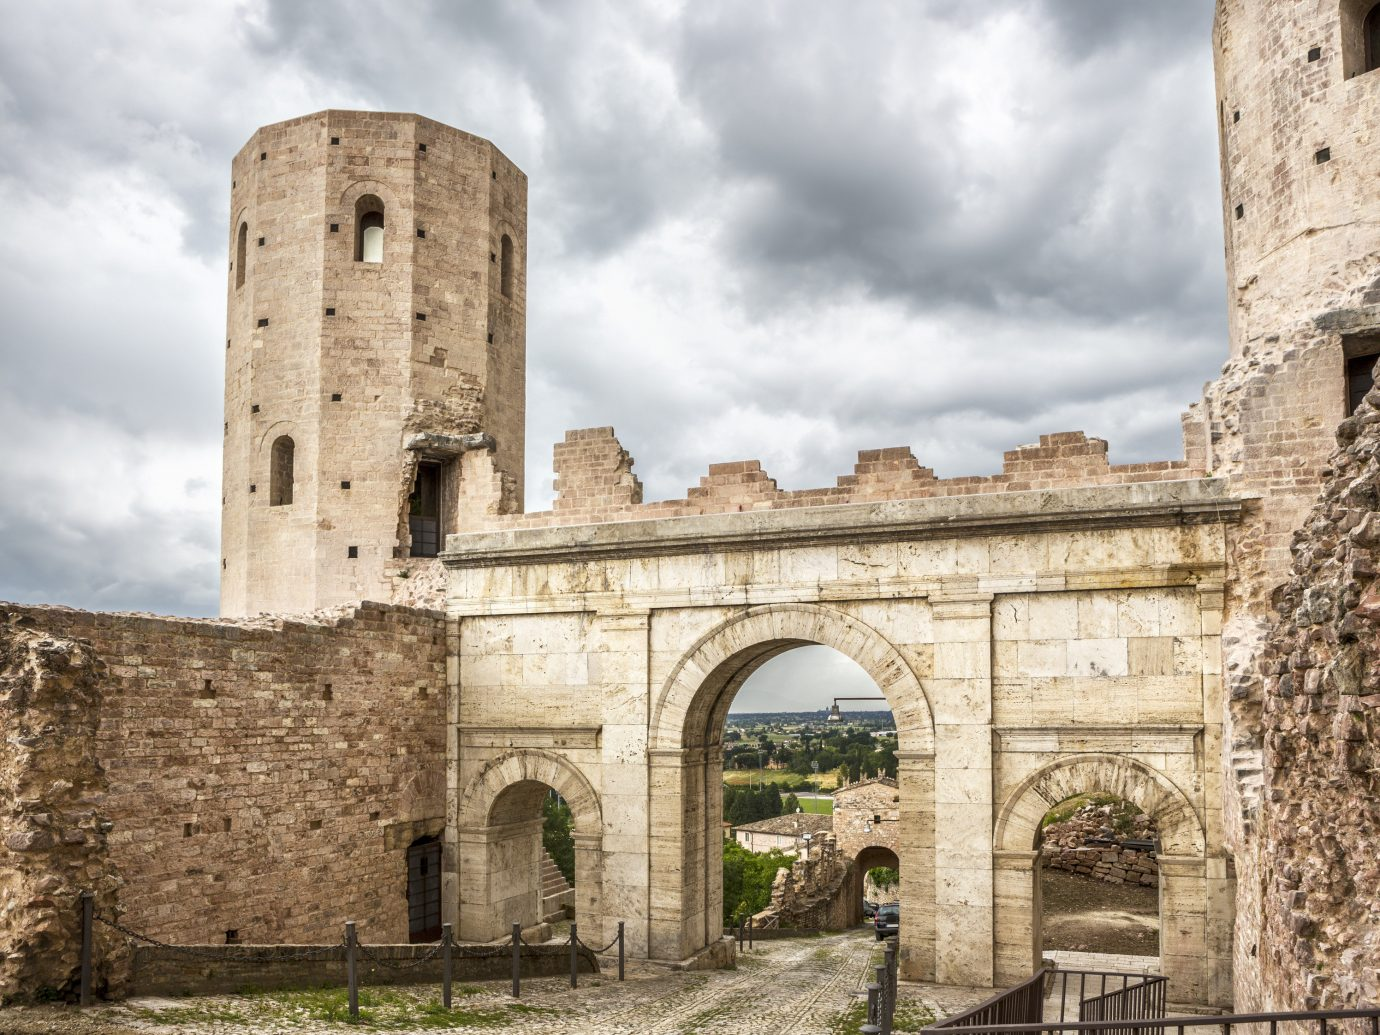 Trip Ideas building outdoor sky stone Ruins historic site landmark arch ancient history Architecture fortification brick ancient roman architecture old monastery place of worship history abbey tall middle ages bastion